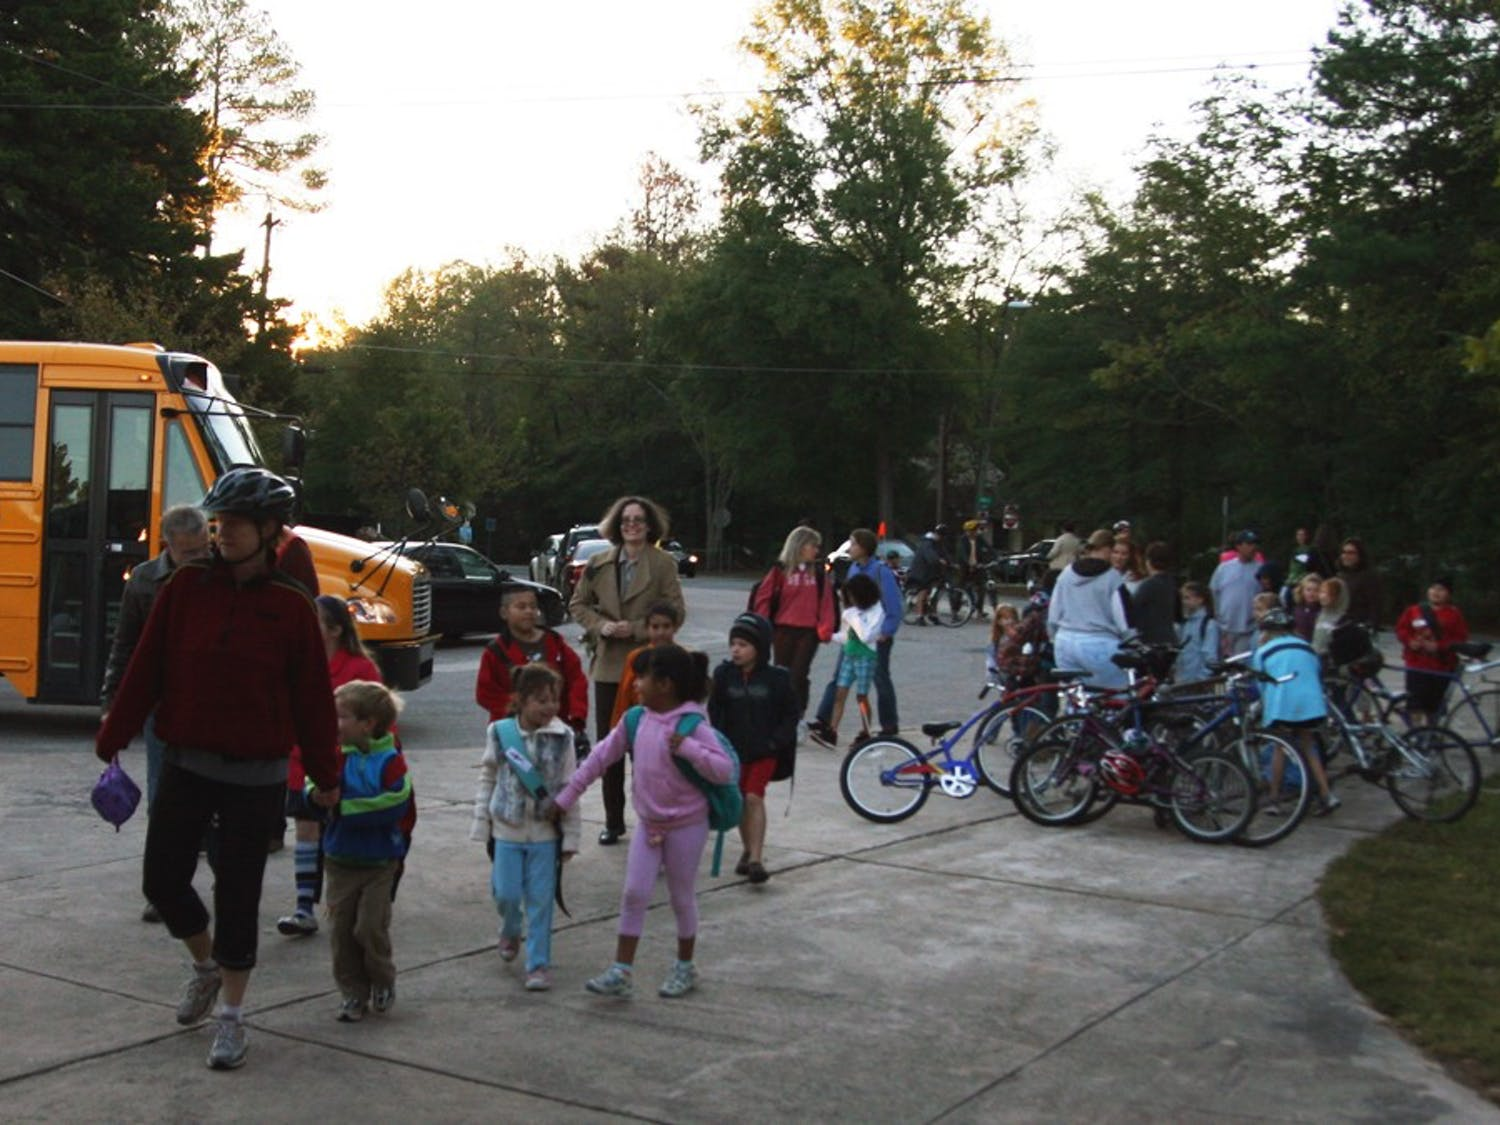 Children and parents of Carrboro Elementary School take part in International Walk to School Day on Wednesday morning. This is the sixth year Chapel Hill-Carrboro City Schools has participated in the event.